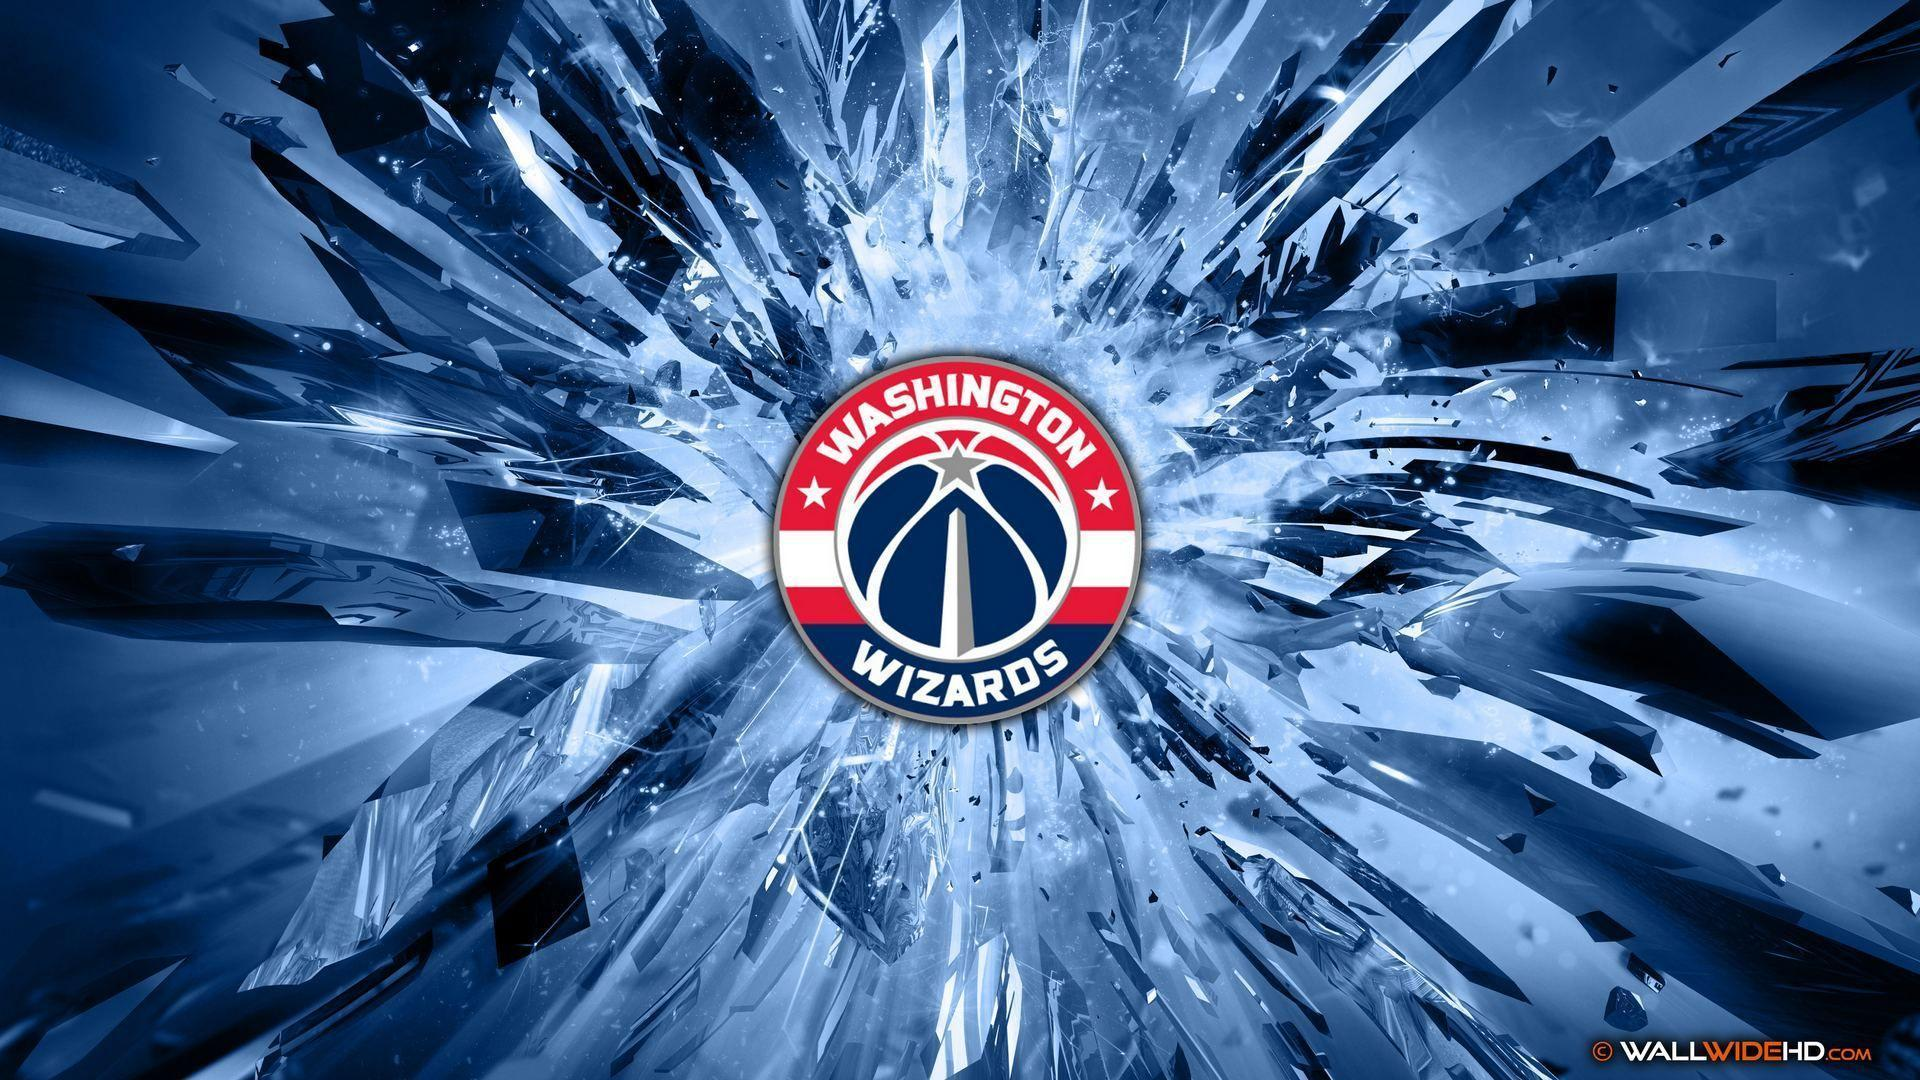 washington wizards wallpaper HD